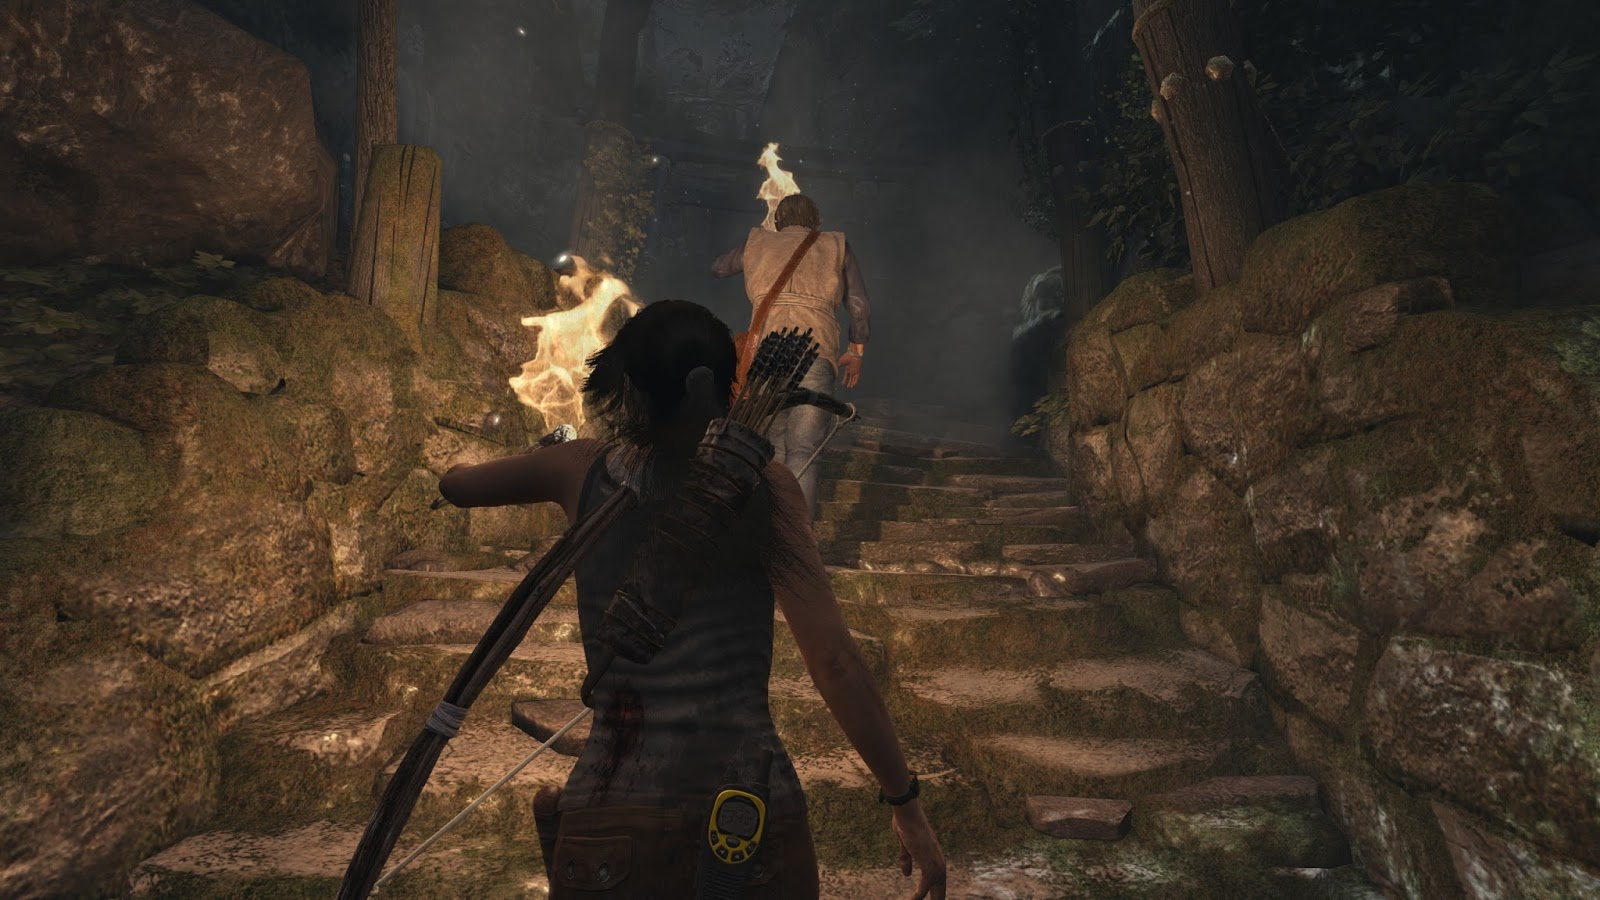 tomb raider 2013 pc game free download